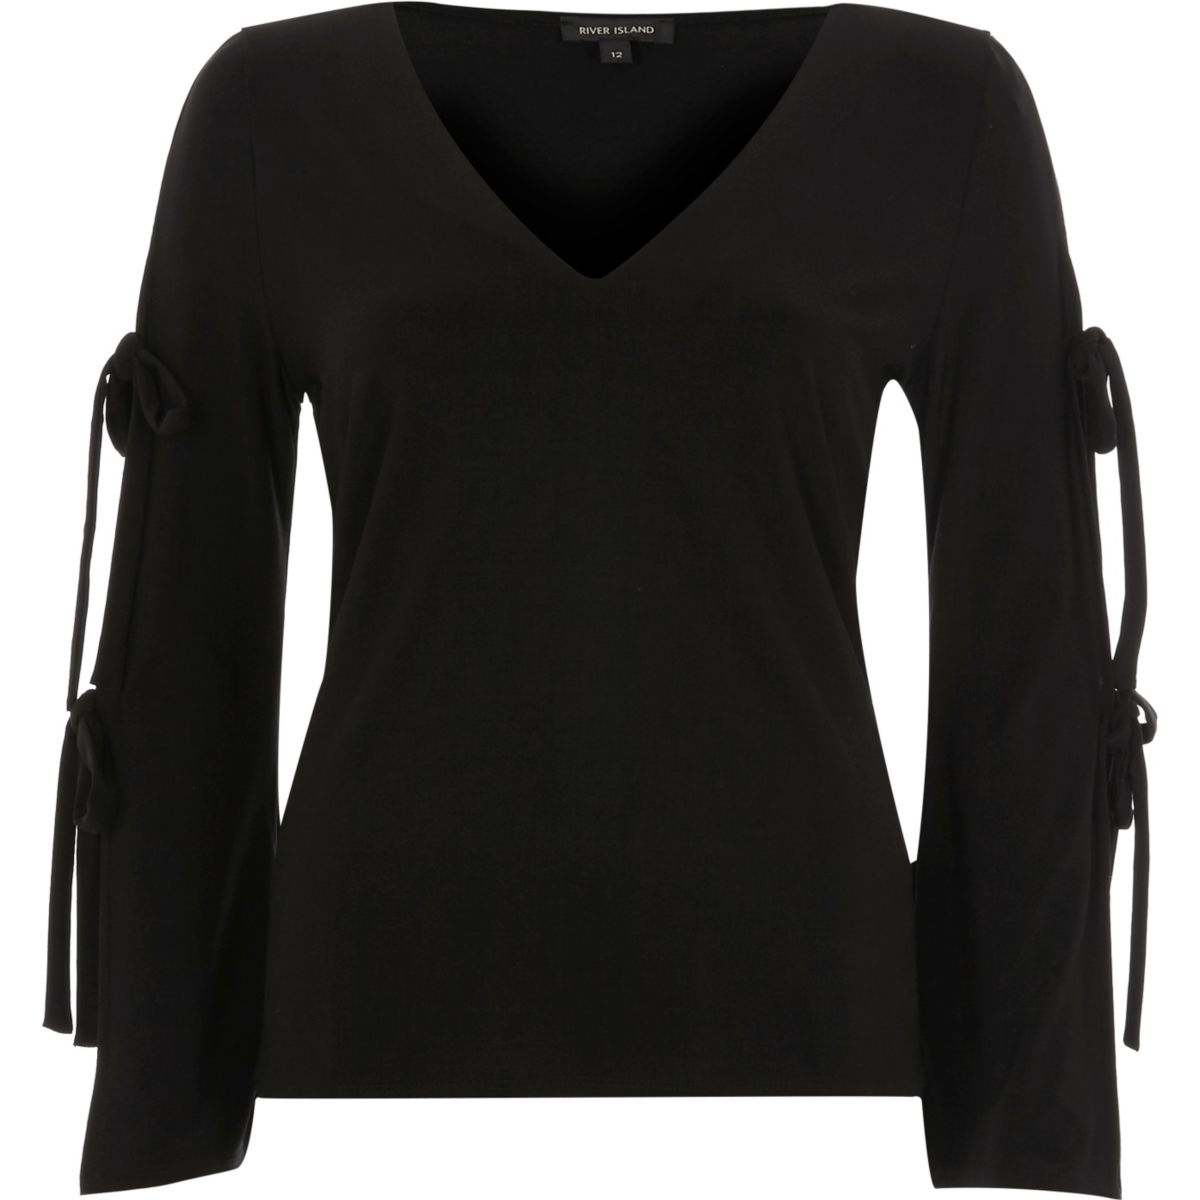 Black tied sleeve top